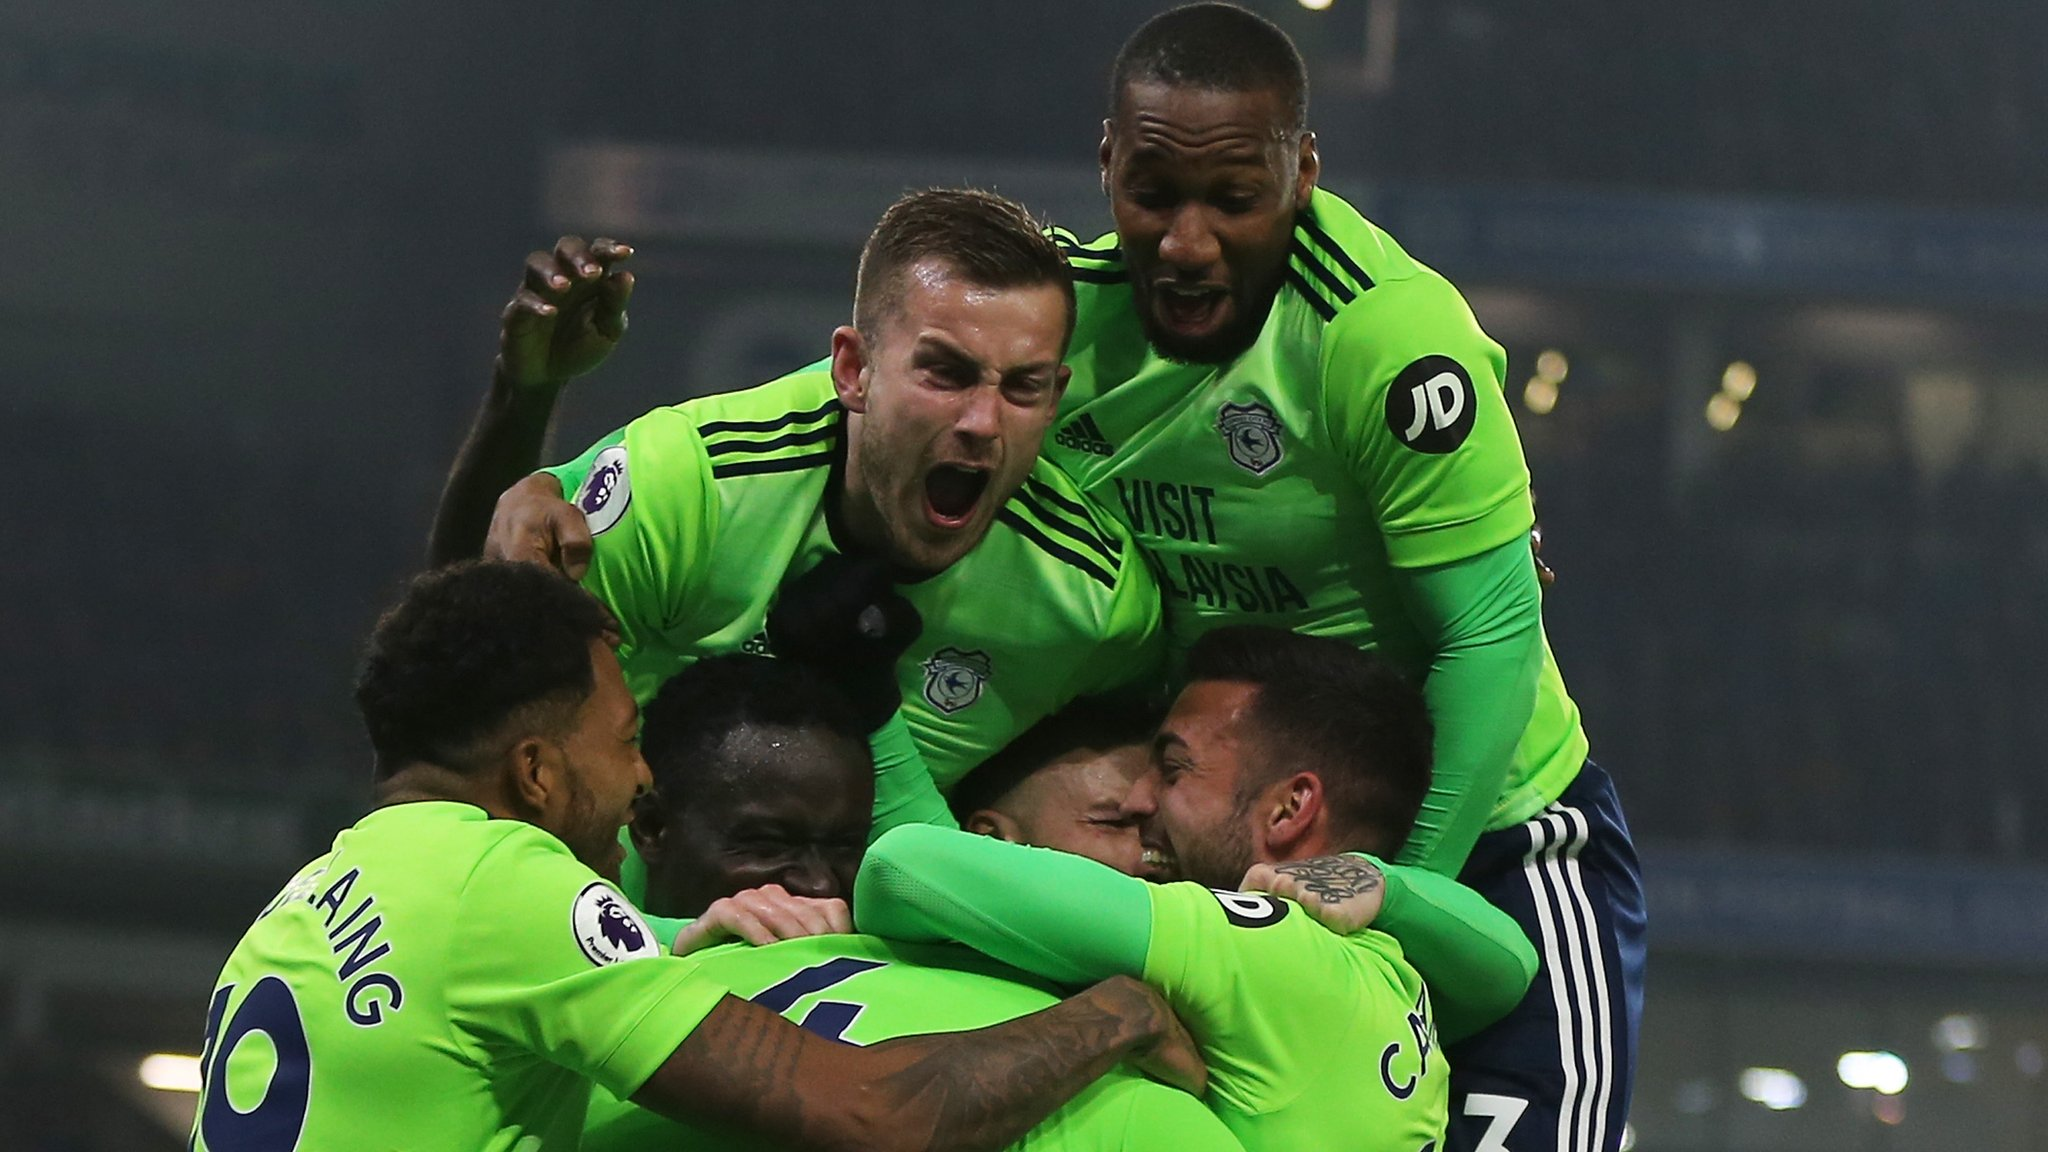 Neil Warnock: Manager hails Cardiff City's 'guts and determination'